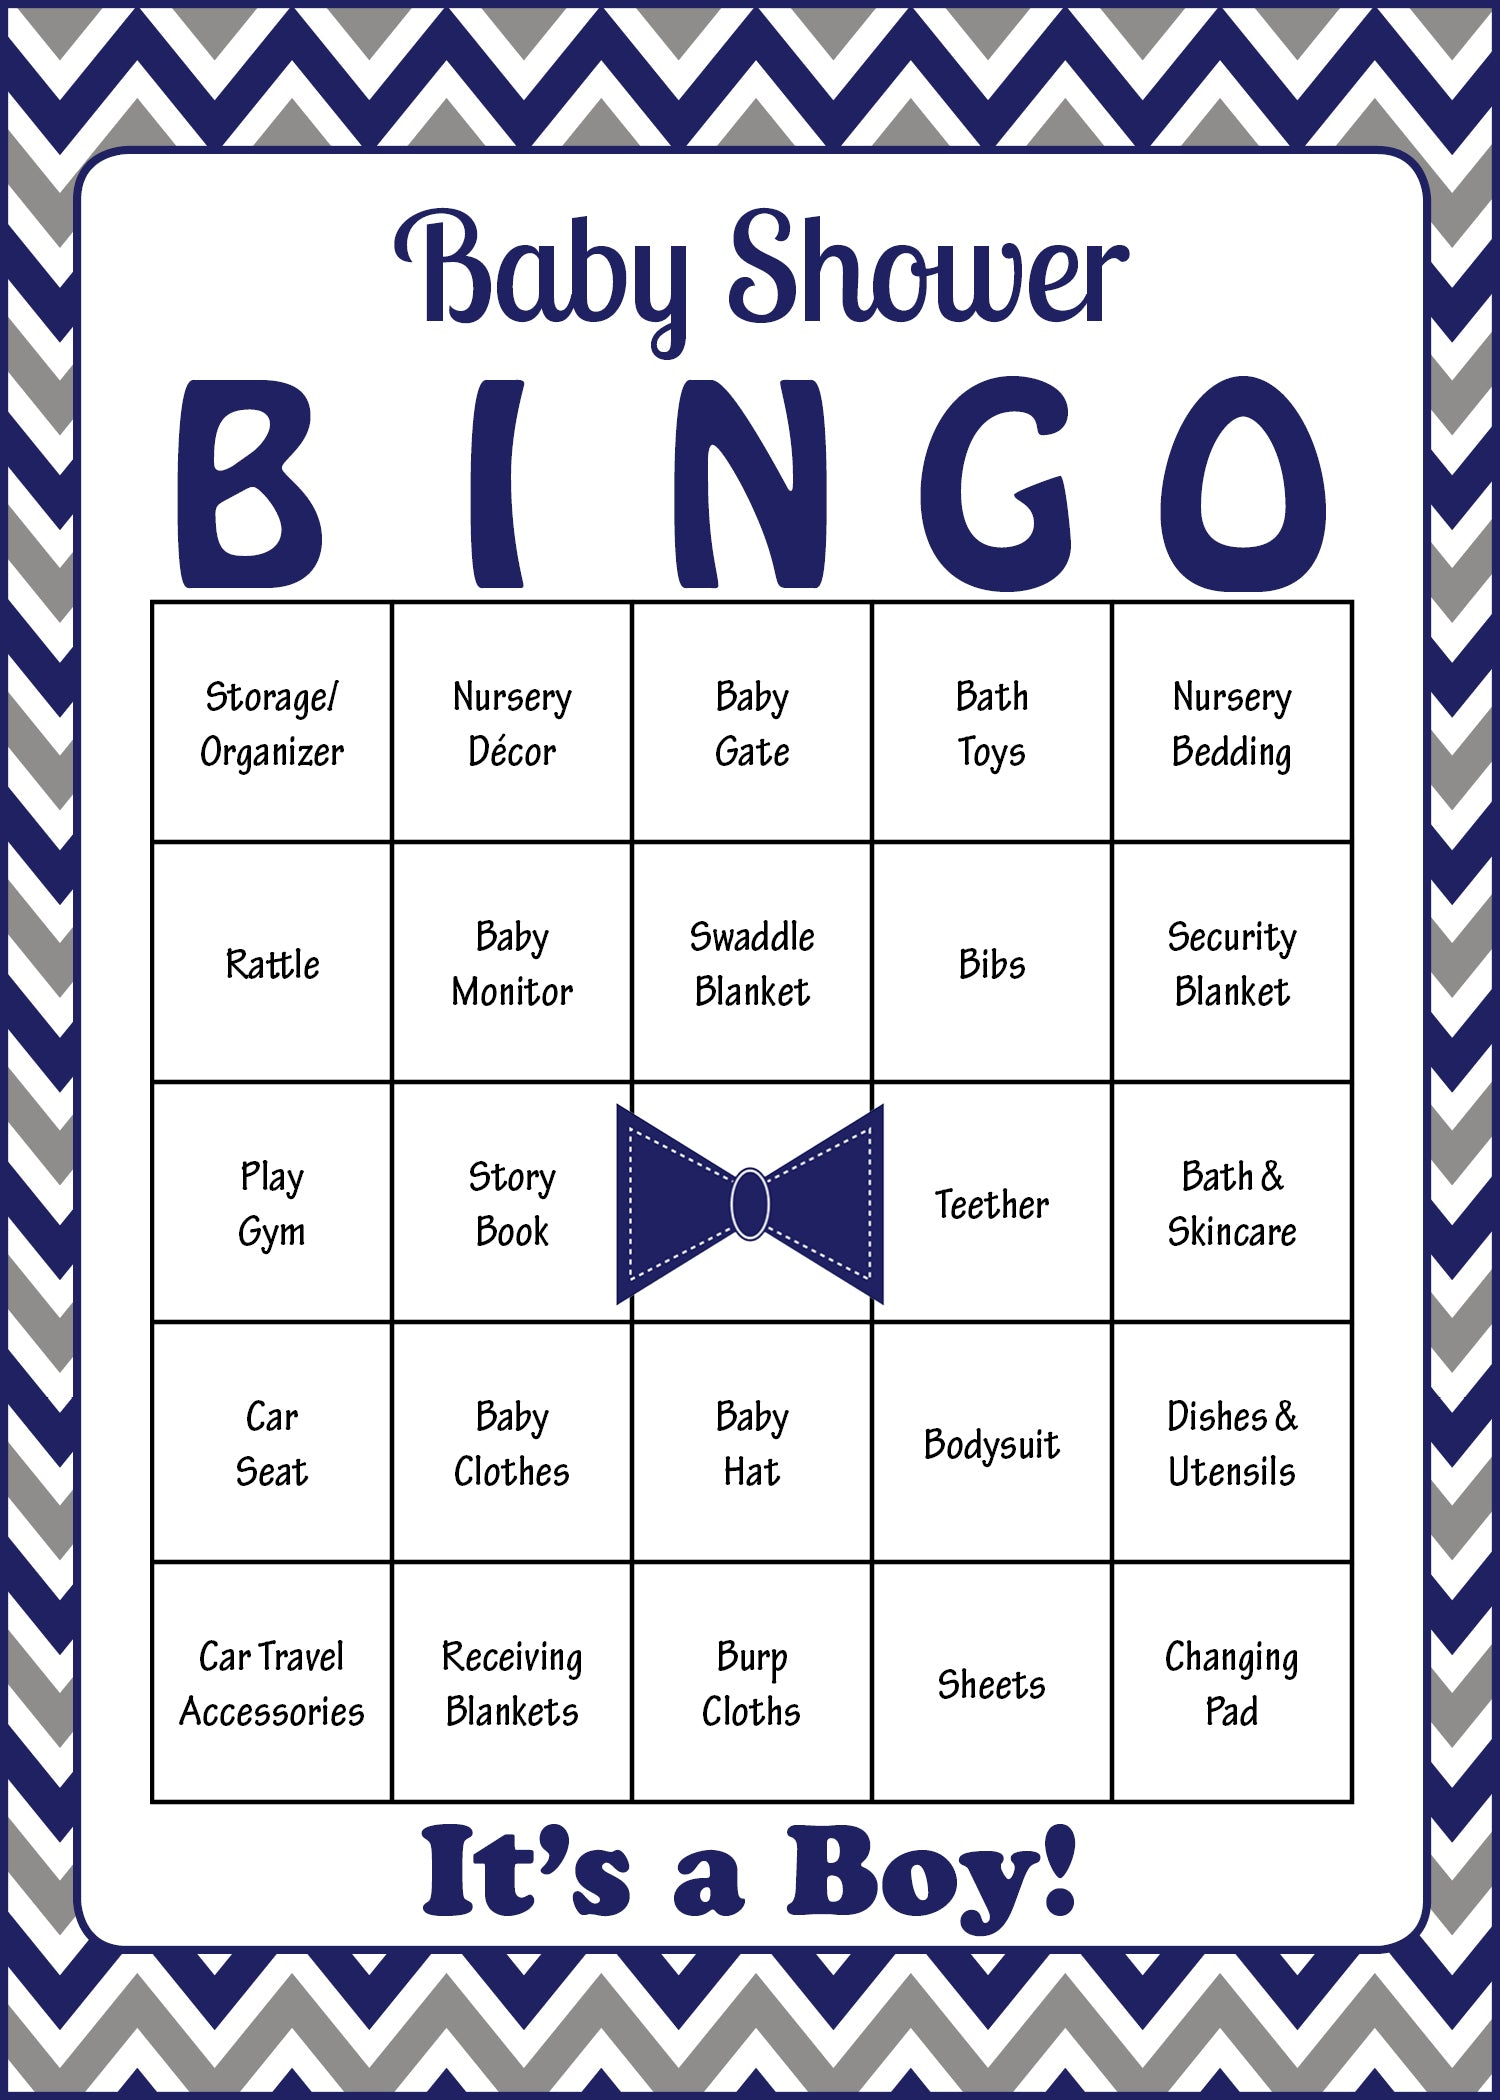 Little Man Baby Bingo Cards   PRINTABLE DOWNLOAD   Prefilled   Baby Shower  Game For Boy   Navy Gray Chevrons   B1006.